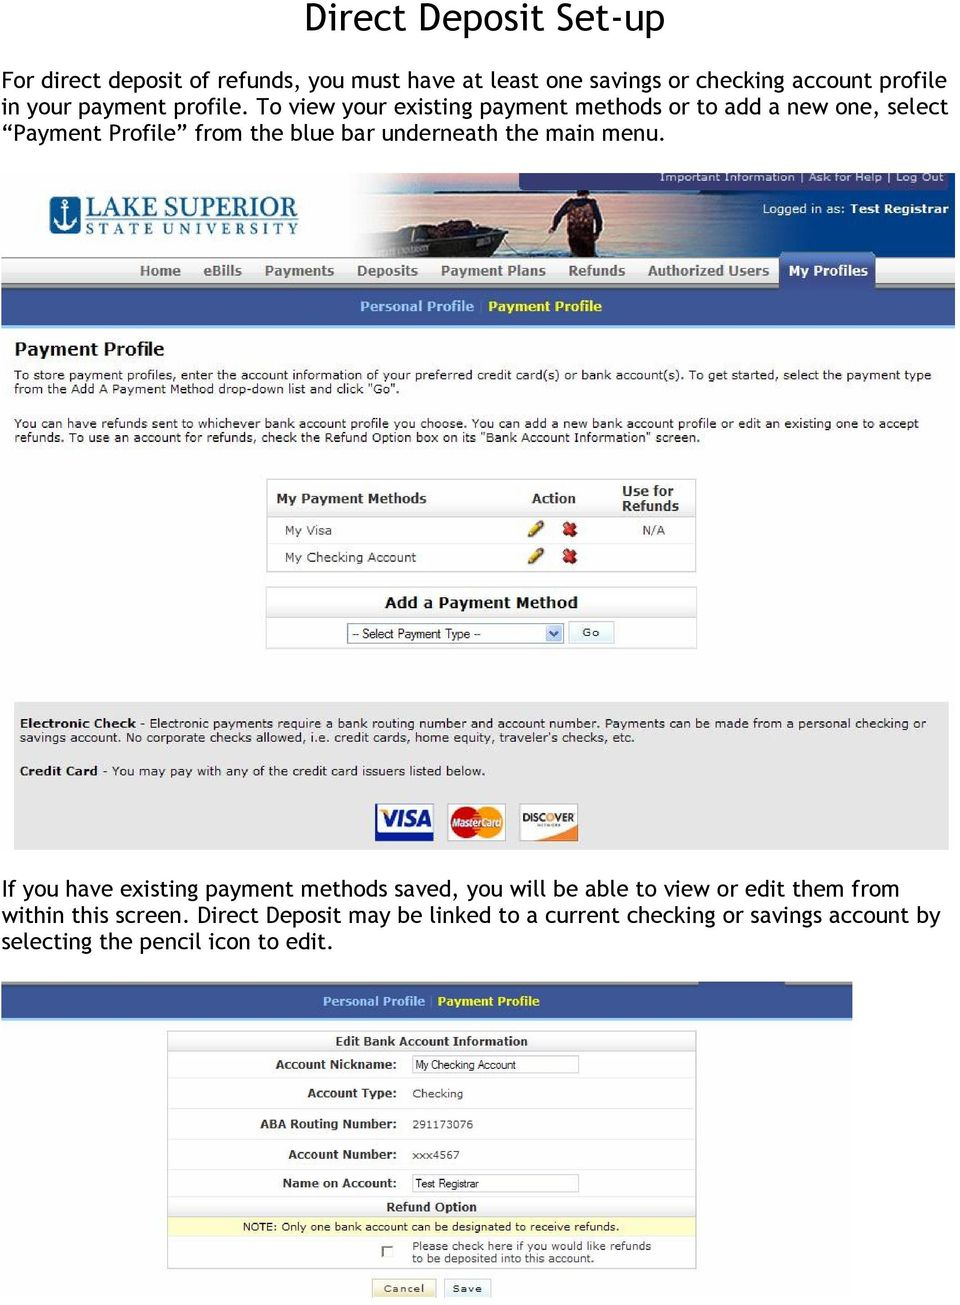 To view your existing payment methods or to add a new one, select Payment Profile from the blue bar underneath the main